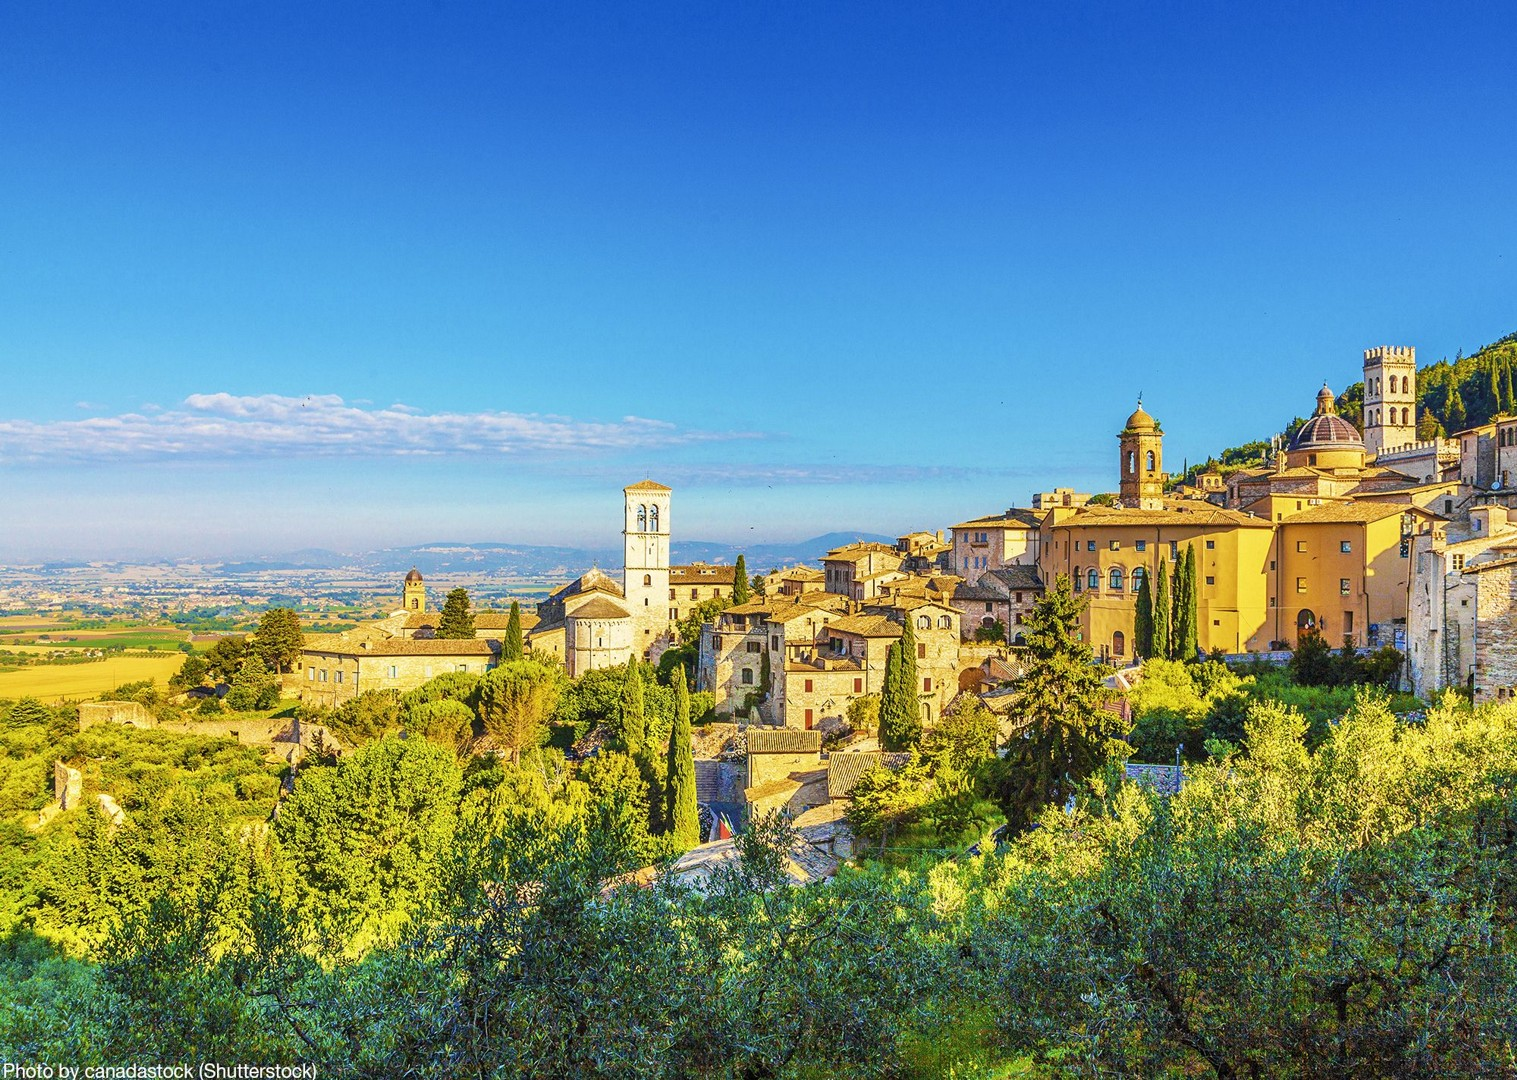 shutterstock By canadastock 367895231.jpg - Italy - Green Valley of Umbria - Self-Guided Leisure Cycling Holiday - Italia Leisure and Family Cycling